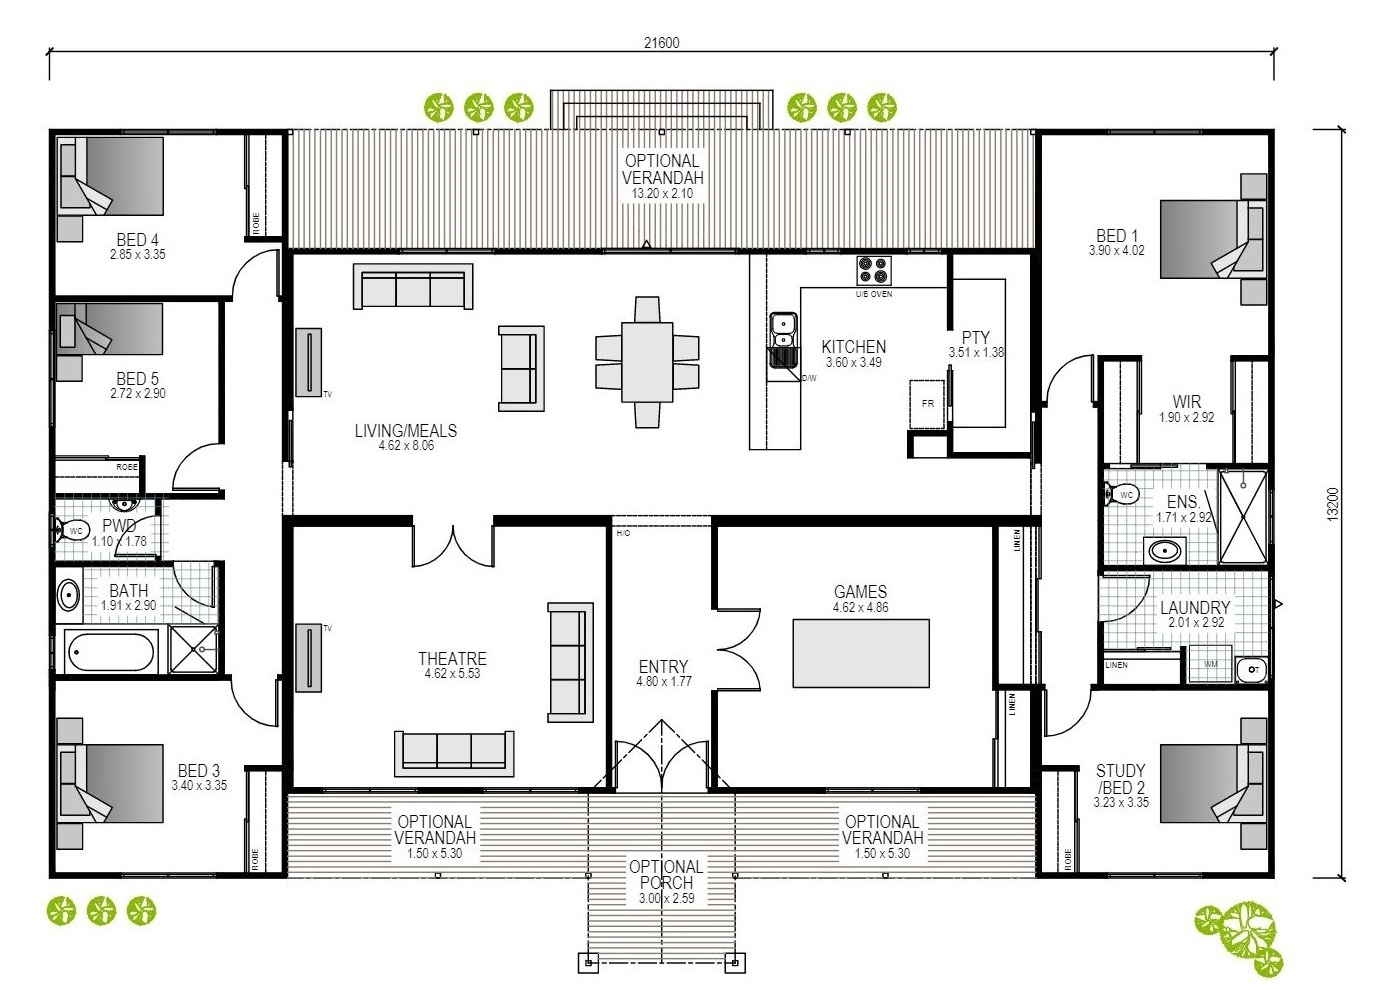 The Four Winds - 21.6m x 13.2m-FLOOR PLAN-1-585044-edited